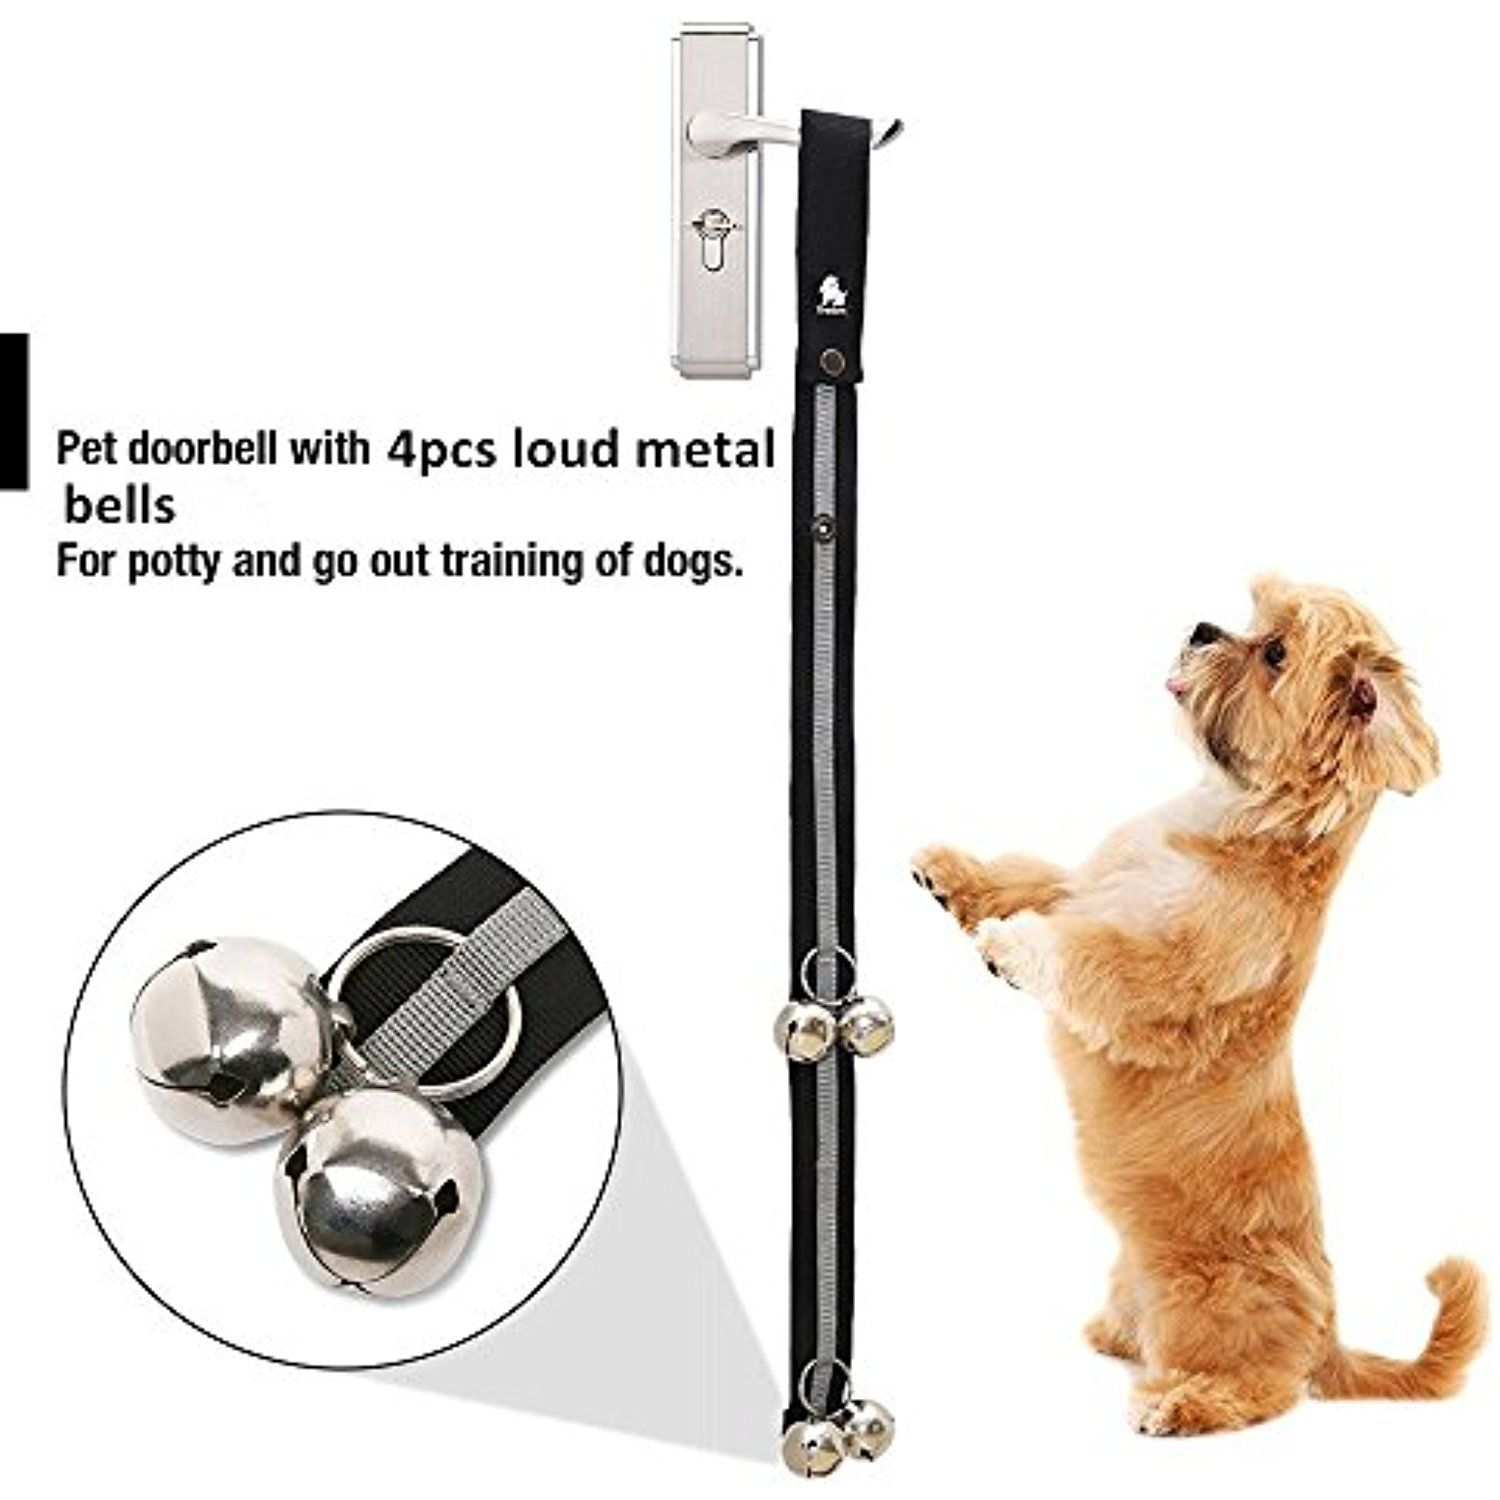 Pettom Dog Doorbells For Dog Training And Housebreaking 1 4 Dog